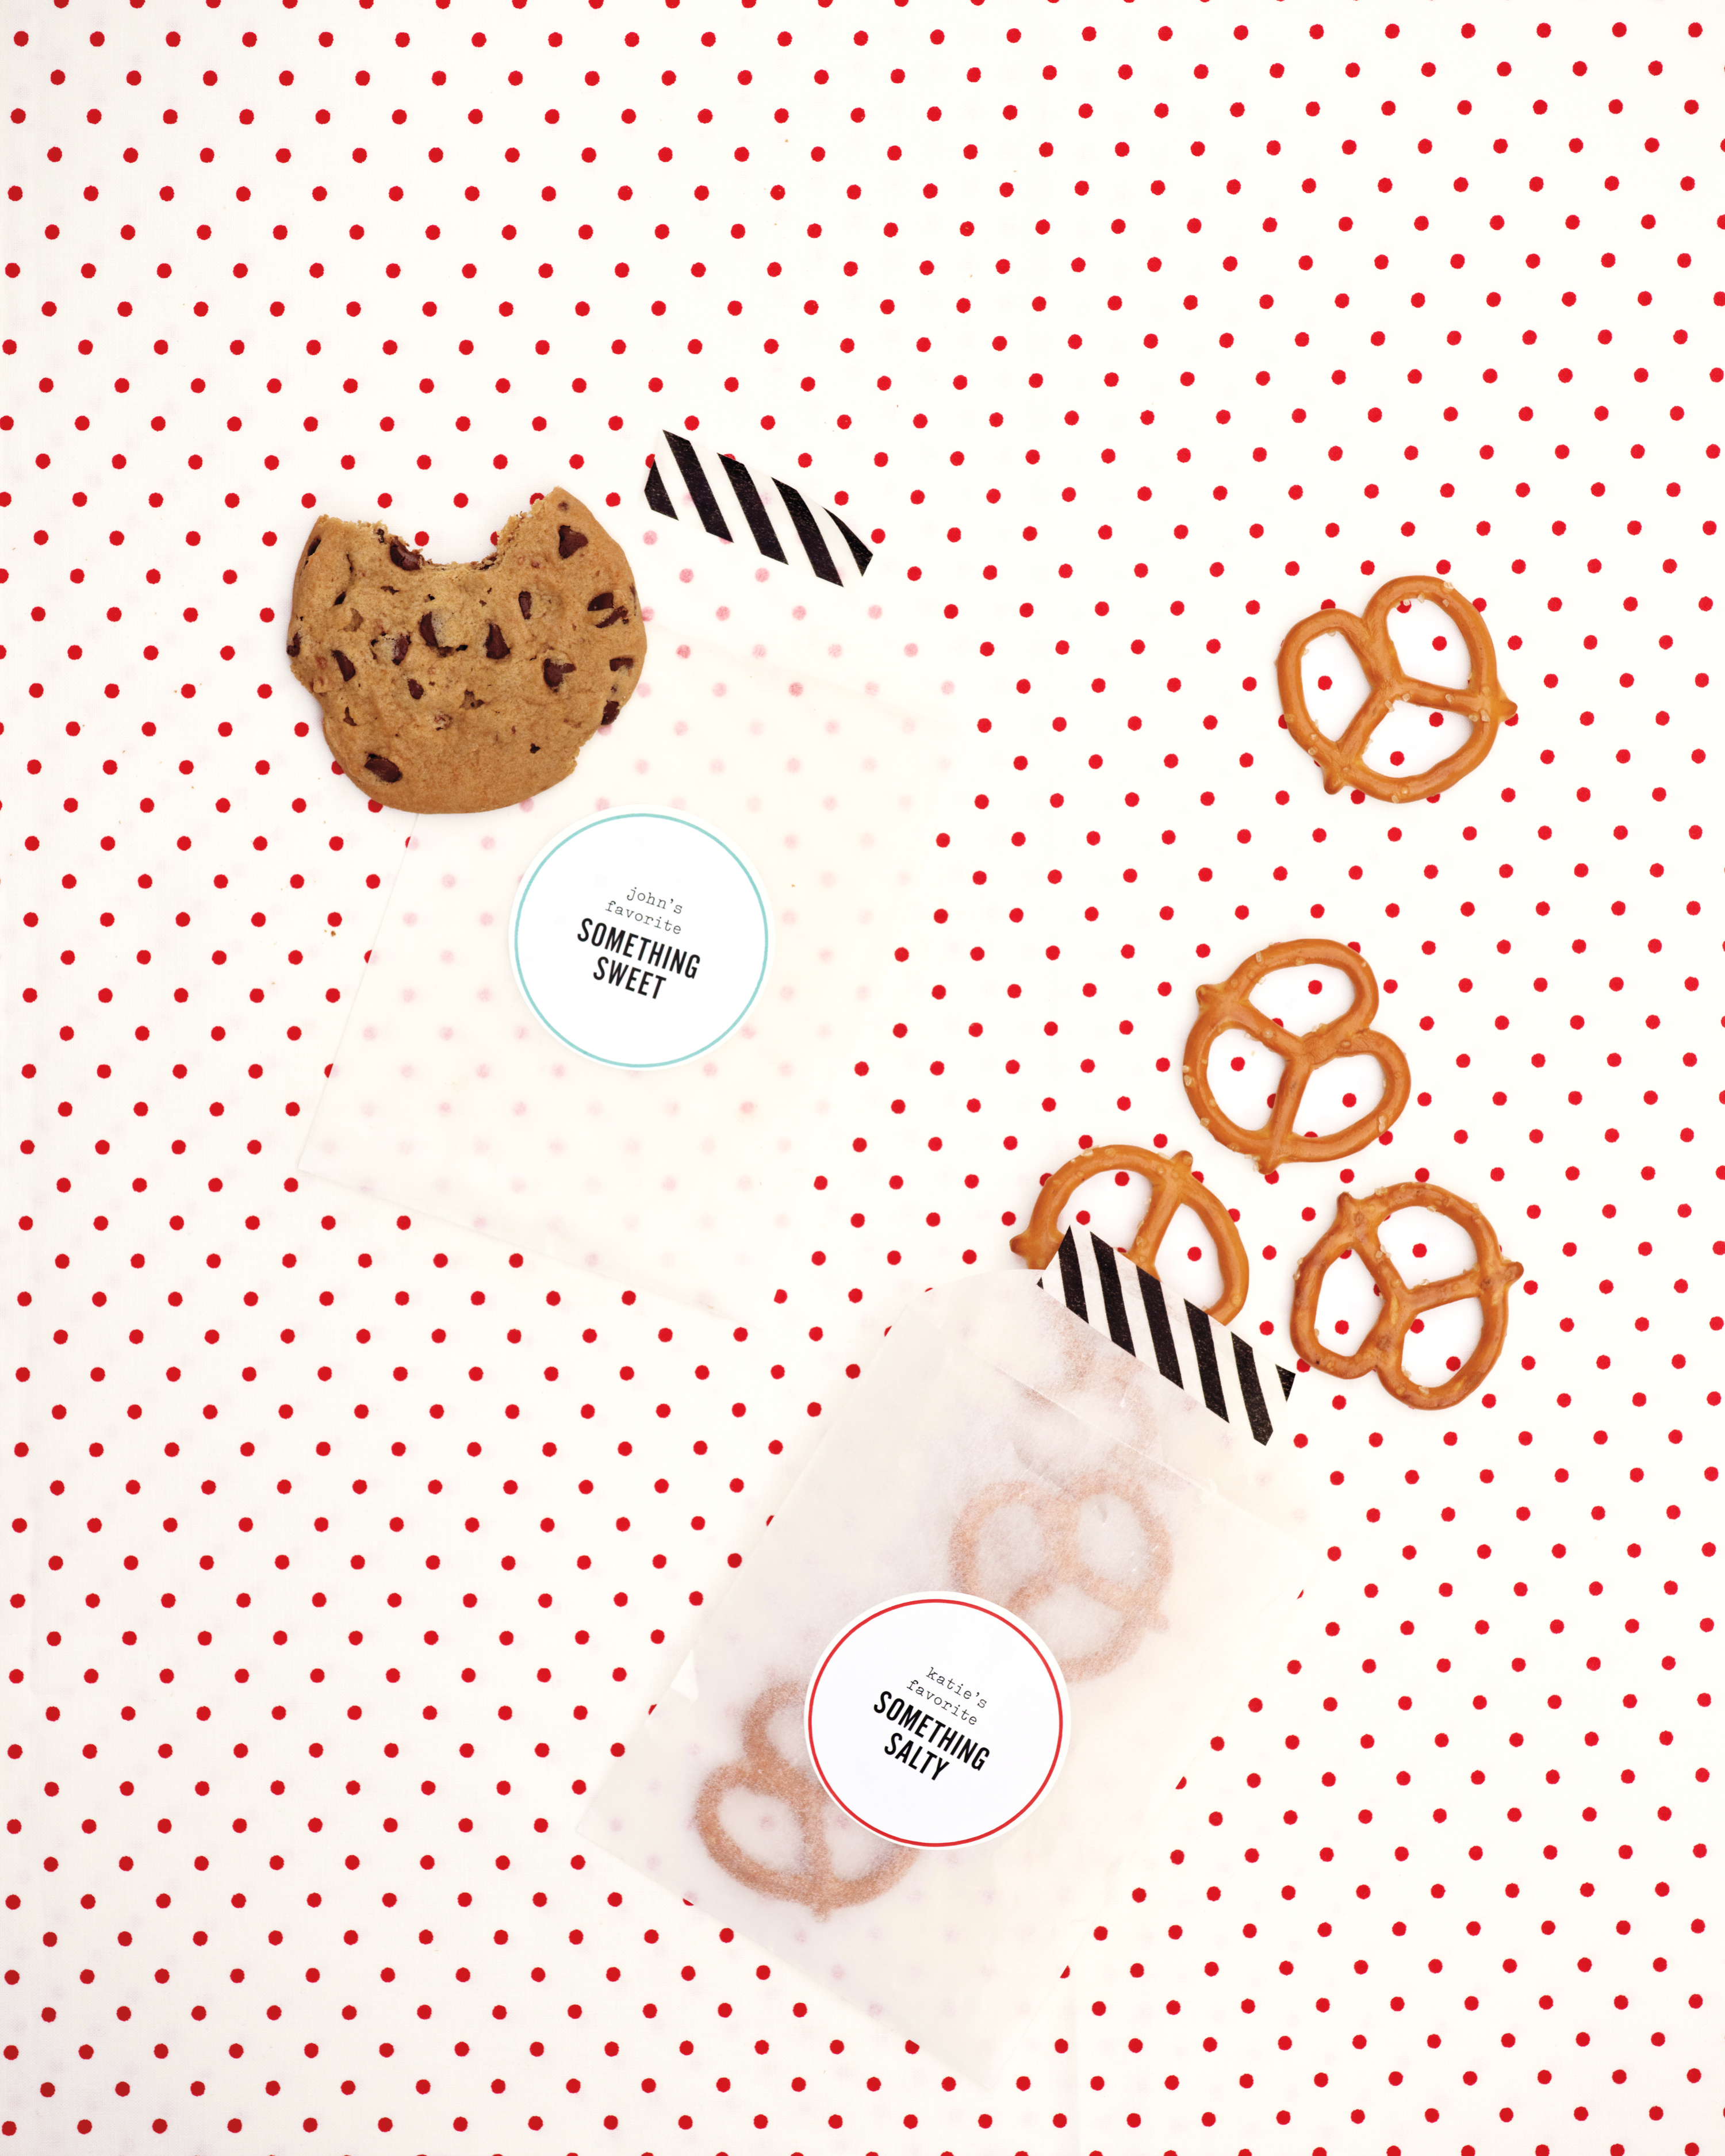 pretzel-favor-cookie-packaging6036-mwd109592.jpg